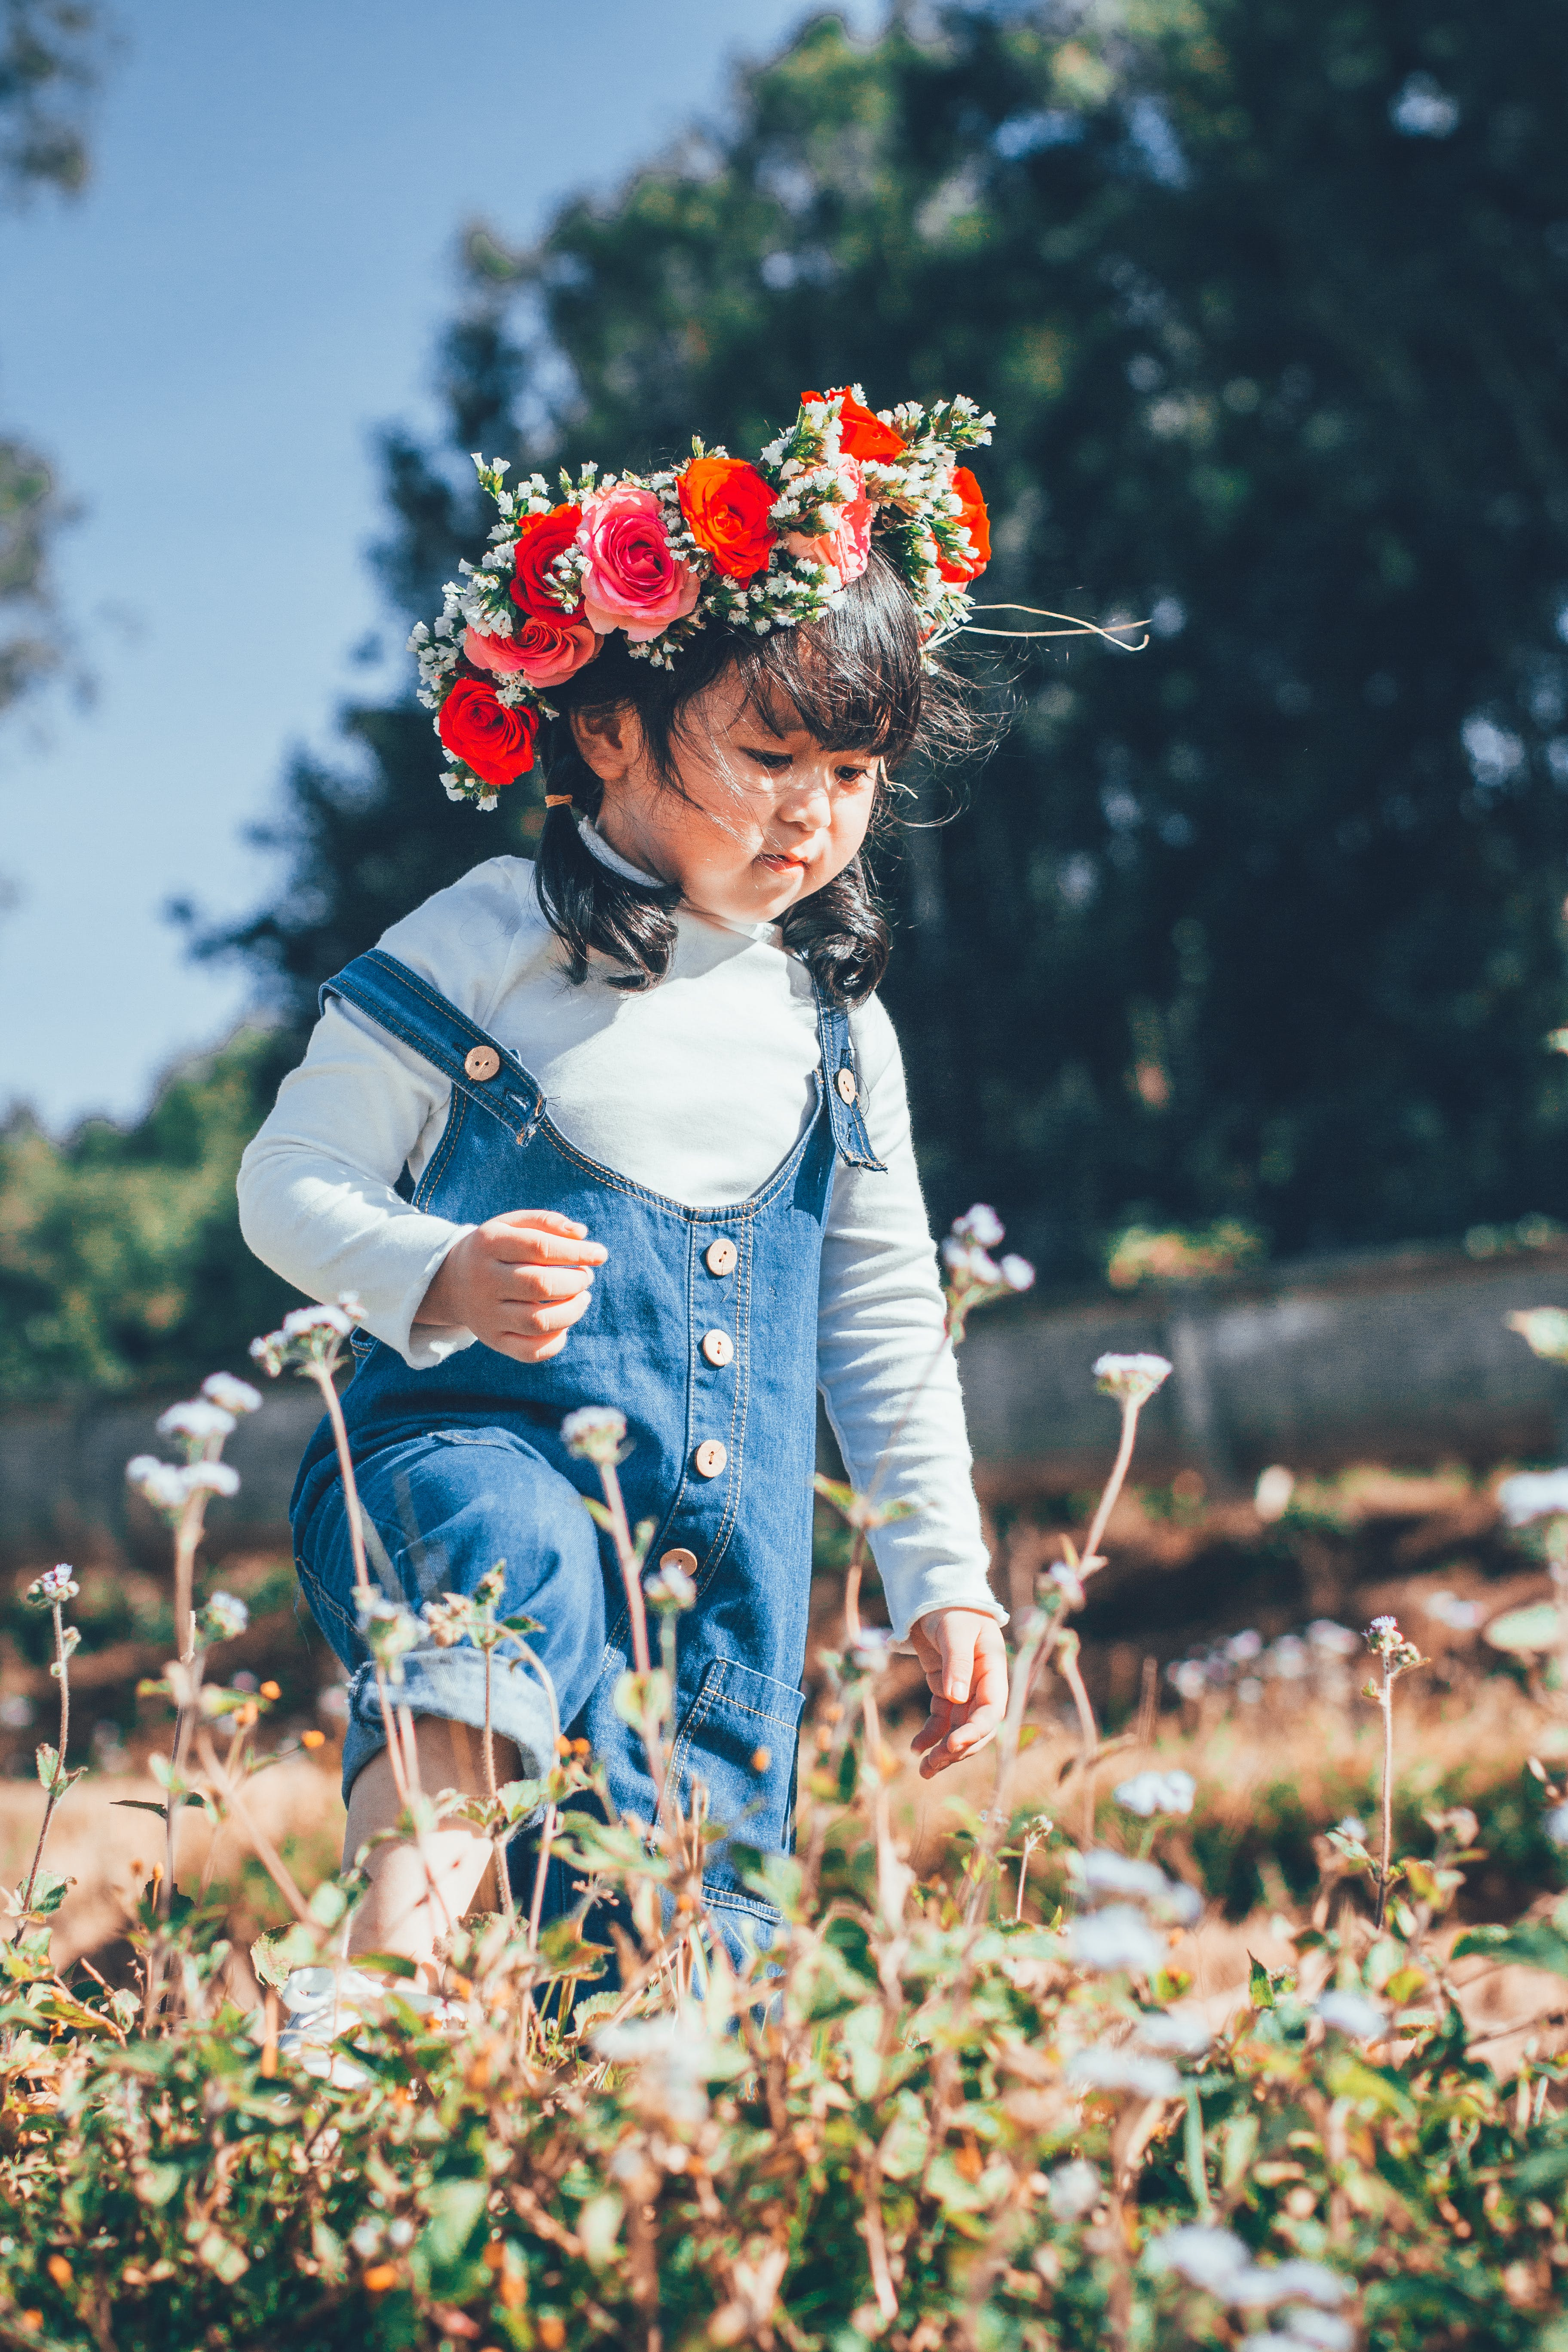 Girl In Blue Denim Dungaree With Red Flowers On Head Walking On Flower Field